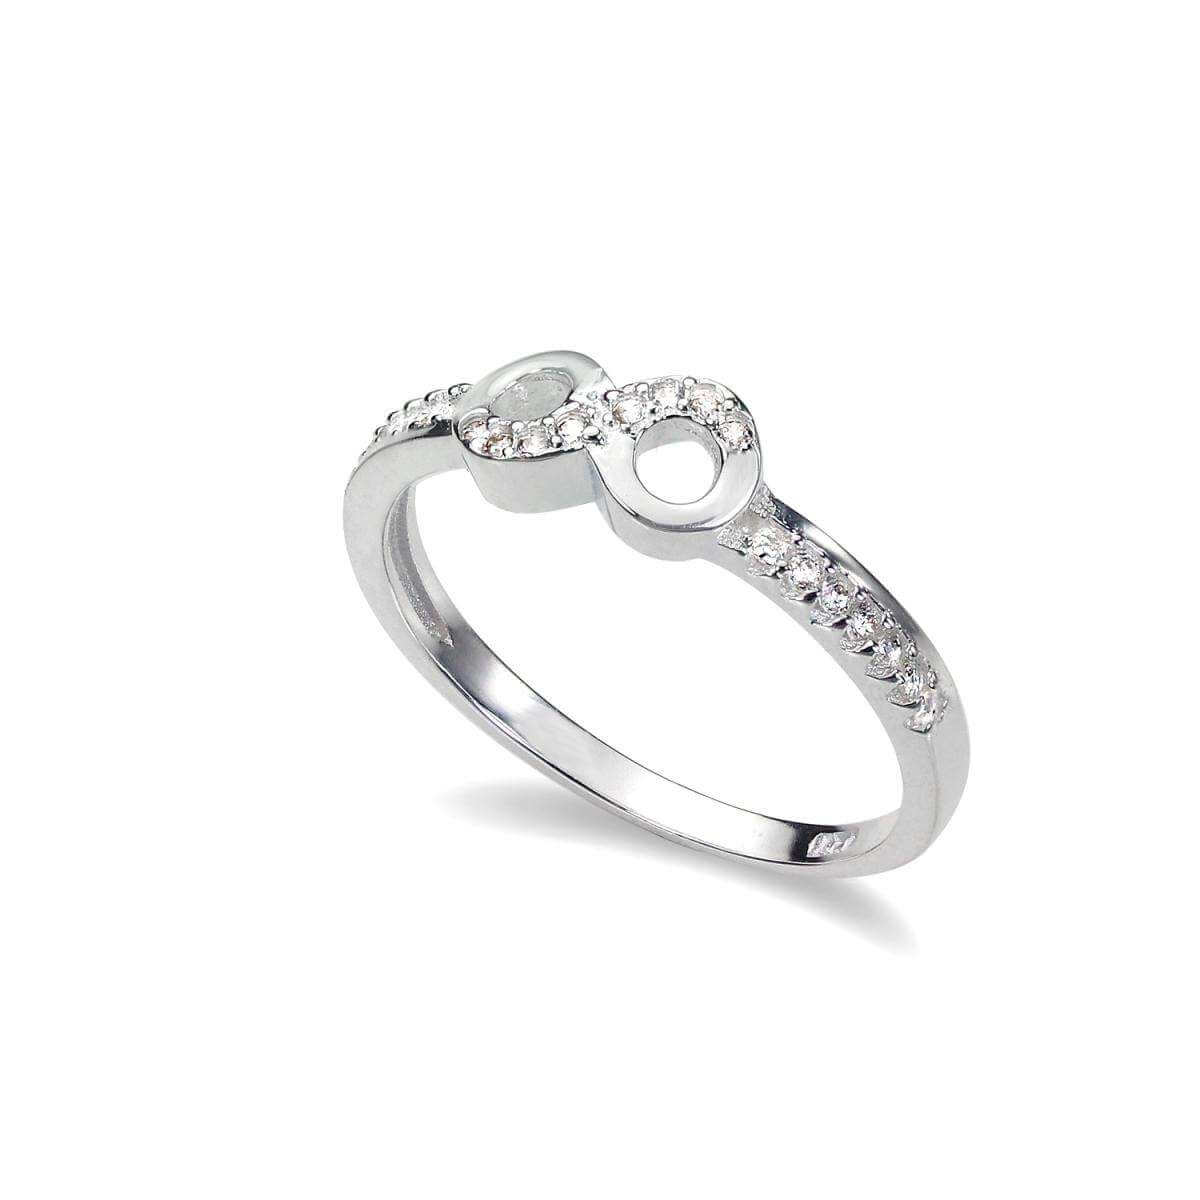 Sterling Silver Half Eternity with dots Ring - UK Size I-U fEPenR5